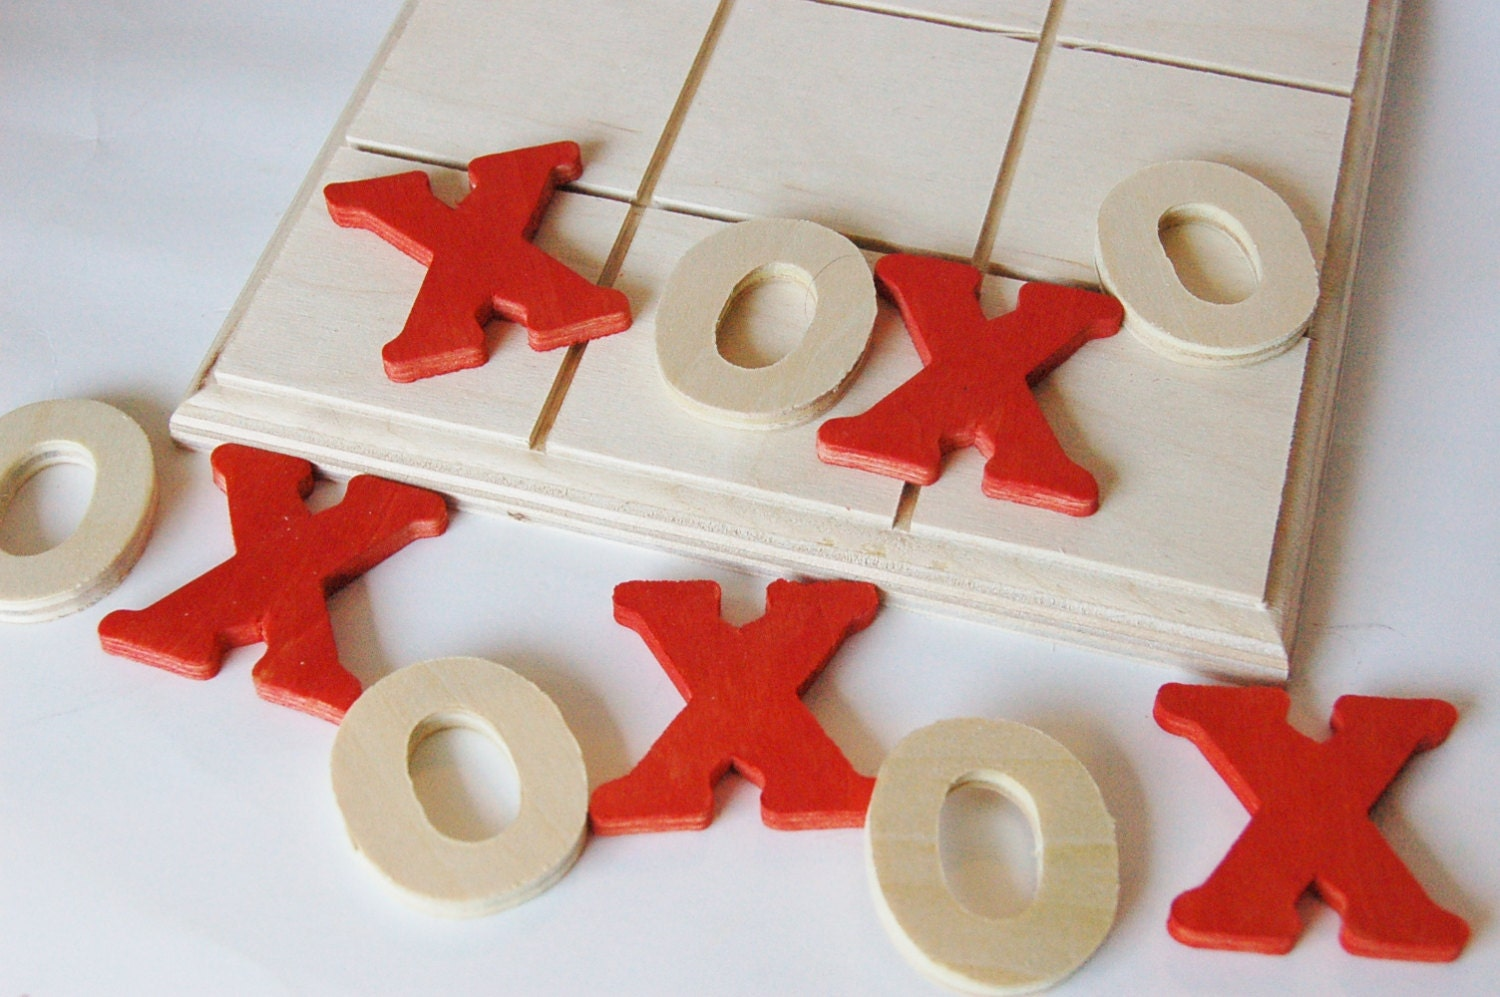 Wooden -LOVE- Valentine Day Edition -Tic Tac Toe Wood Game - applenamos